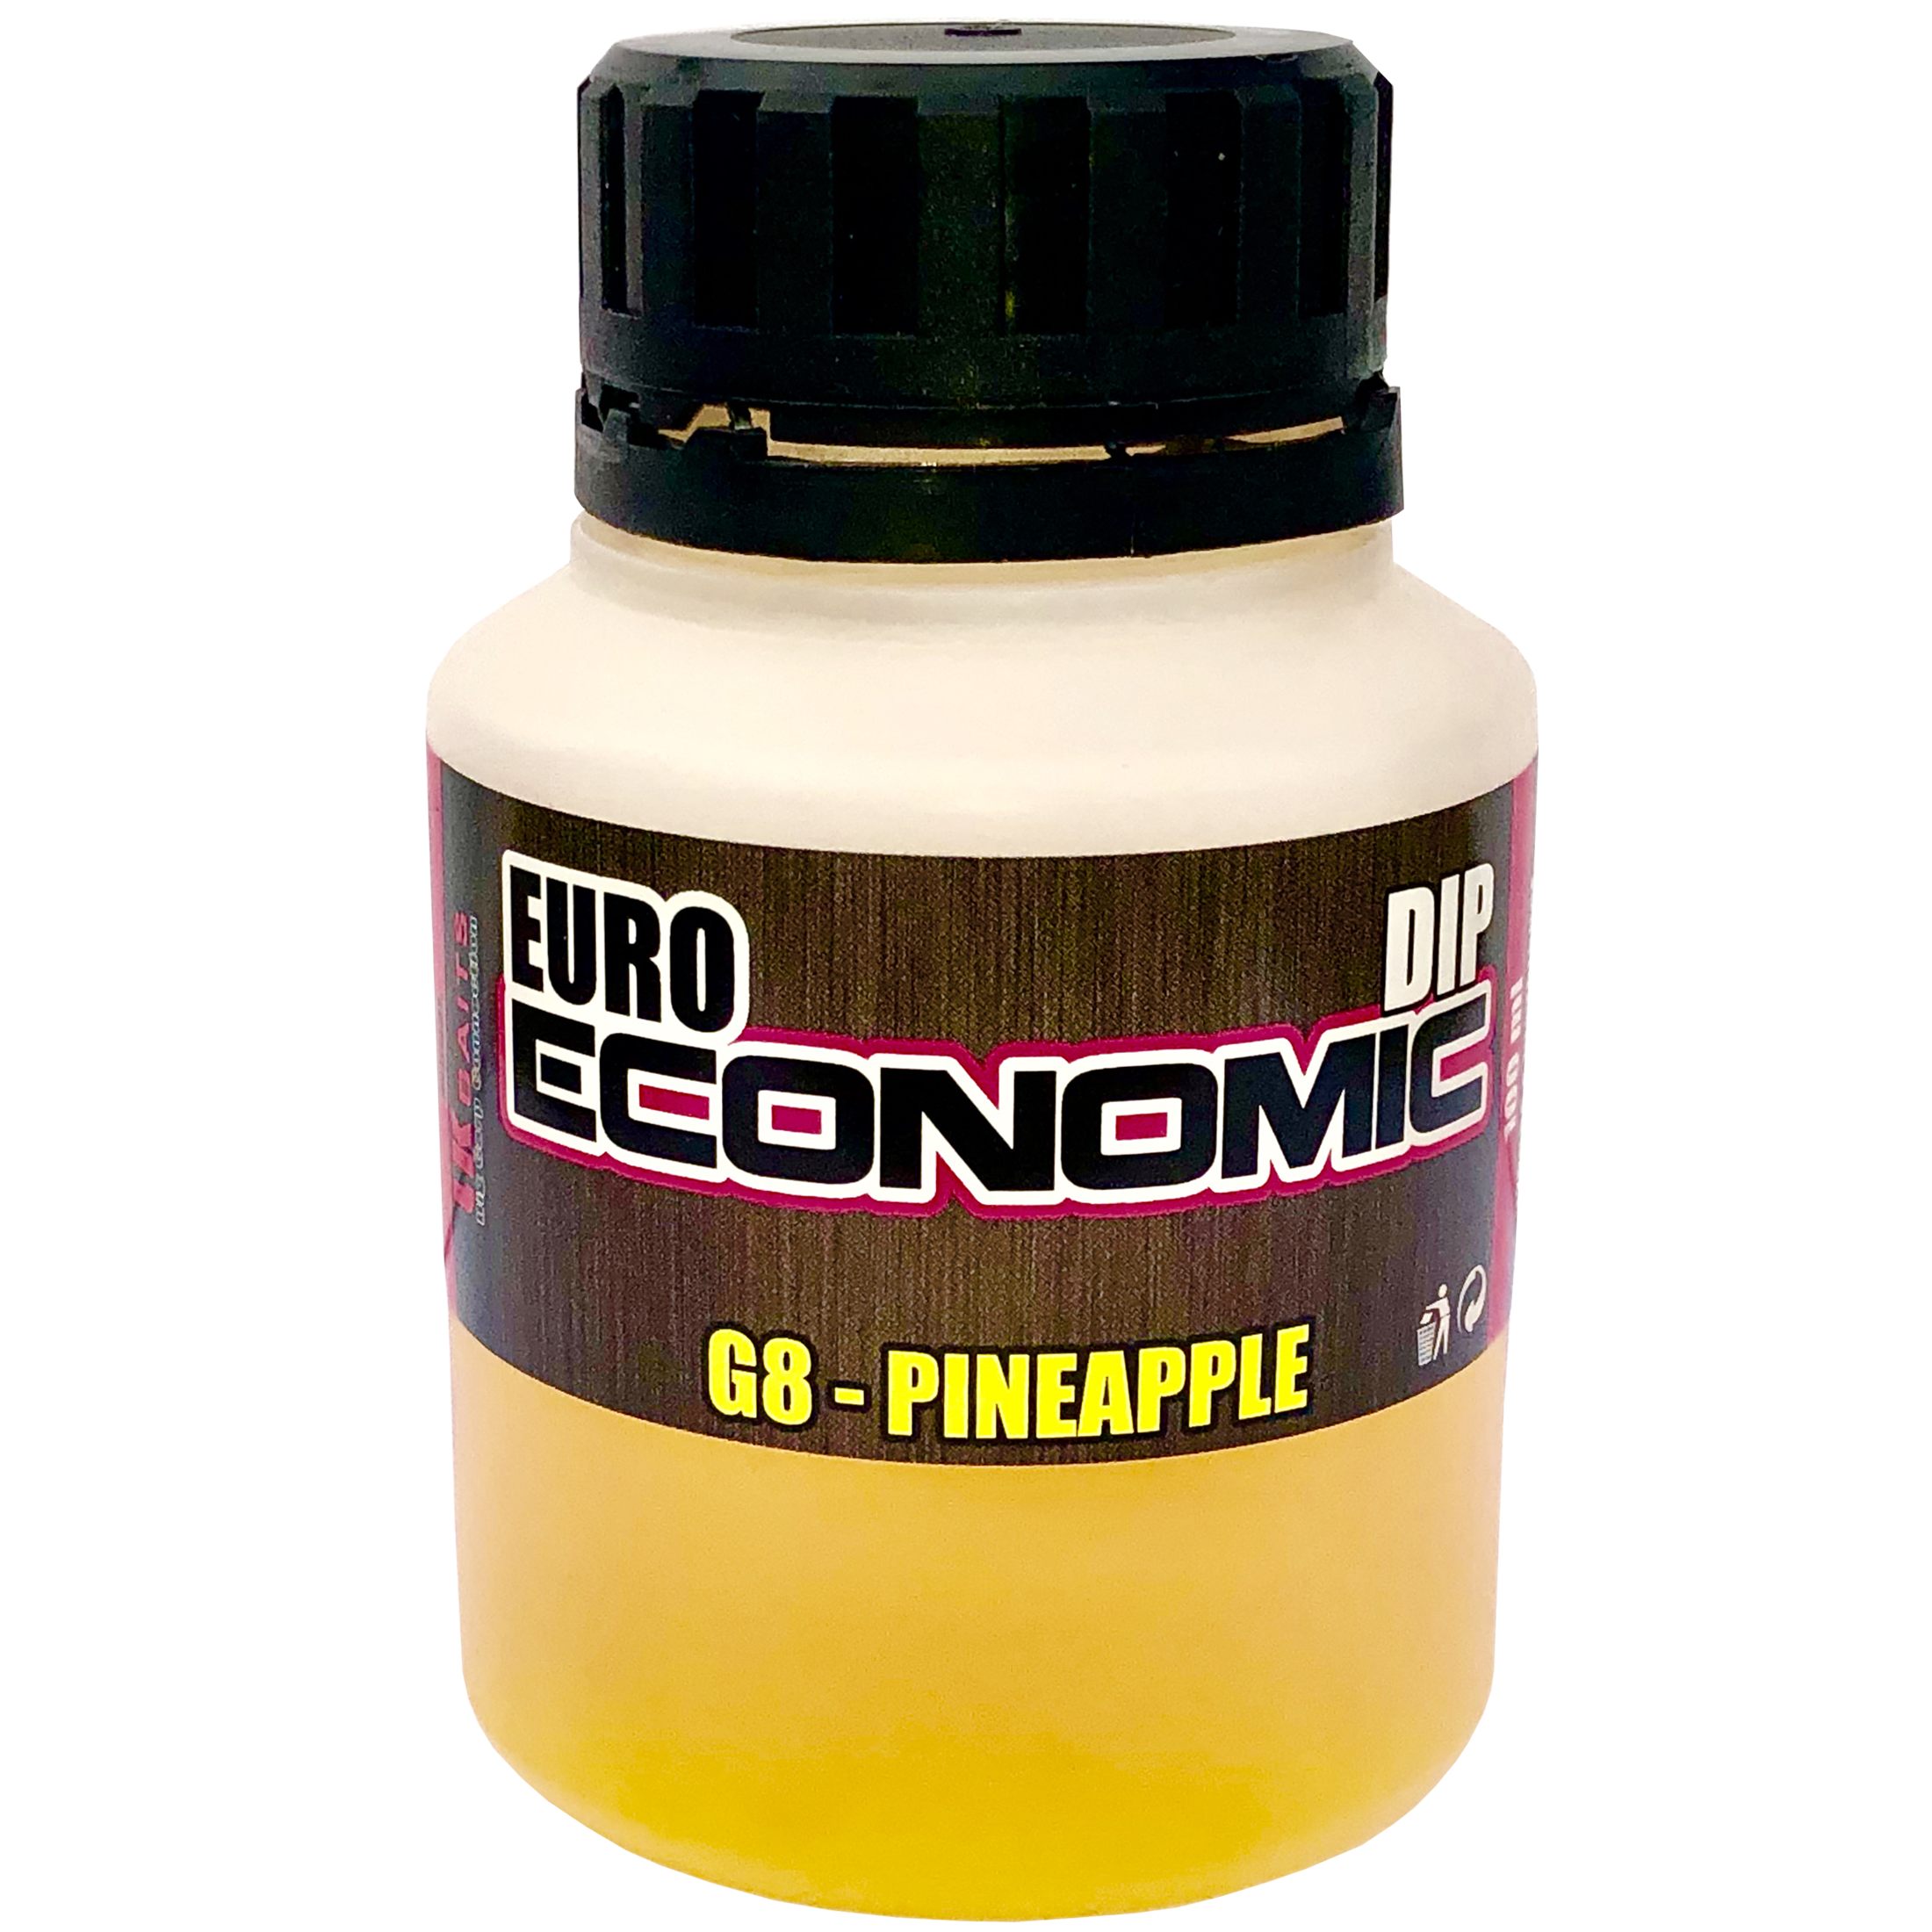 LK BAITS Euro Economic Dip - Sweet Pineapple (100ml)